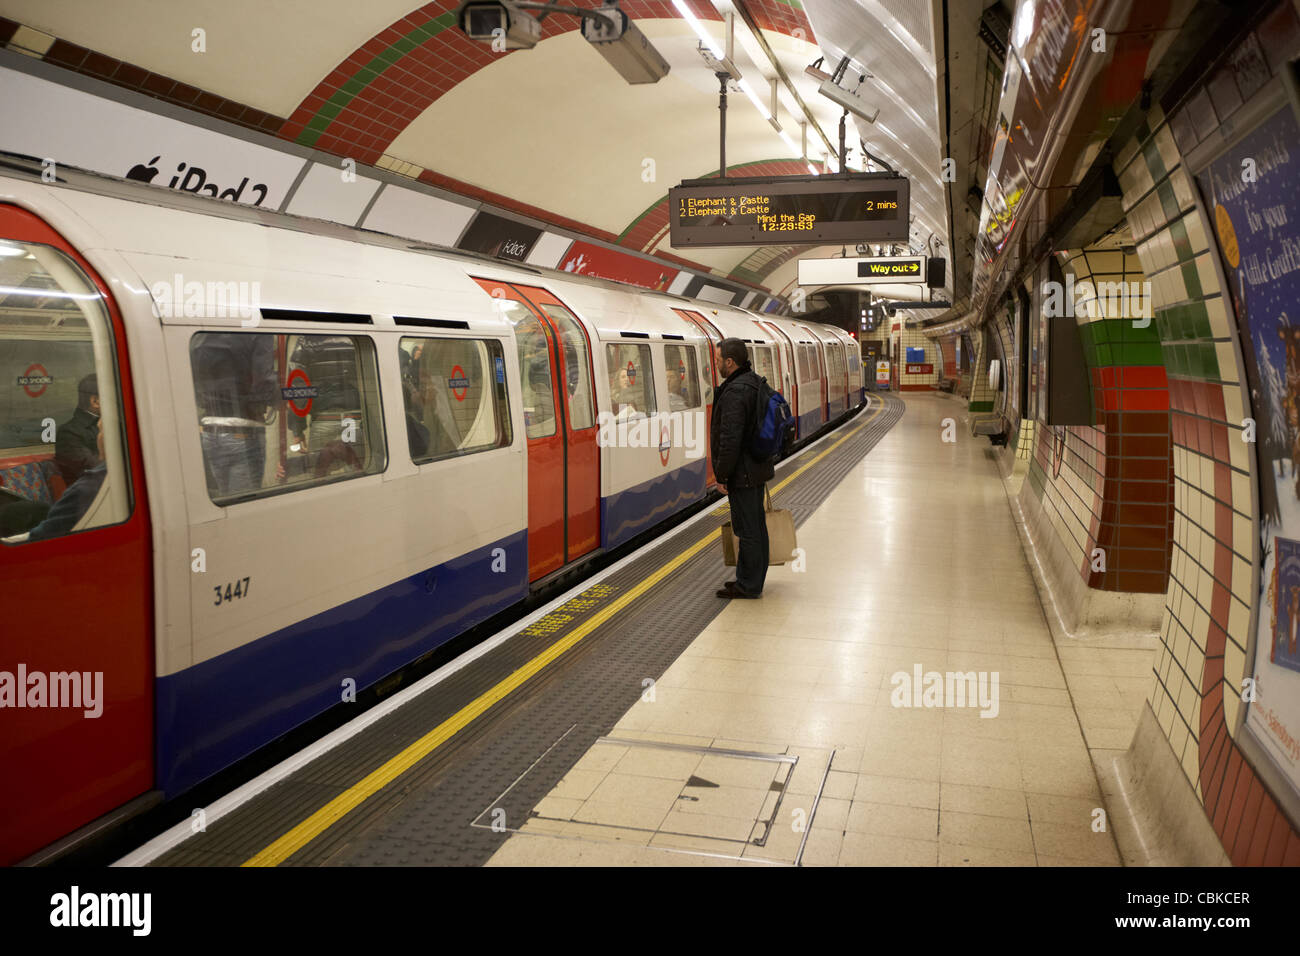 london underground train arriving in piccadilly circus station with single male passenger waiting england united - Stock Image